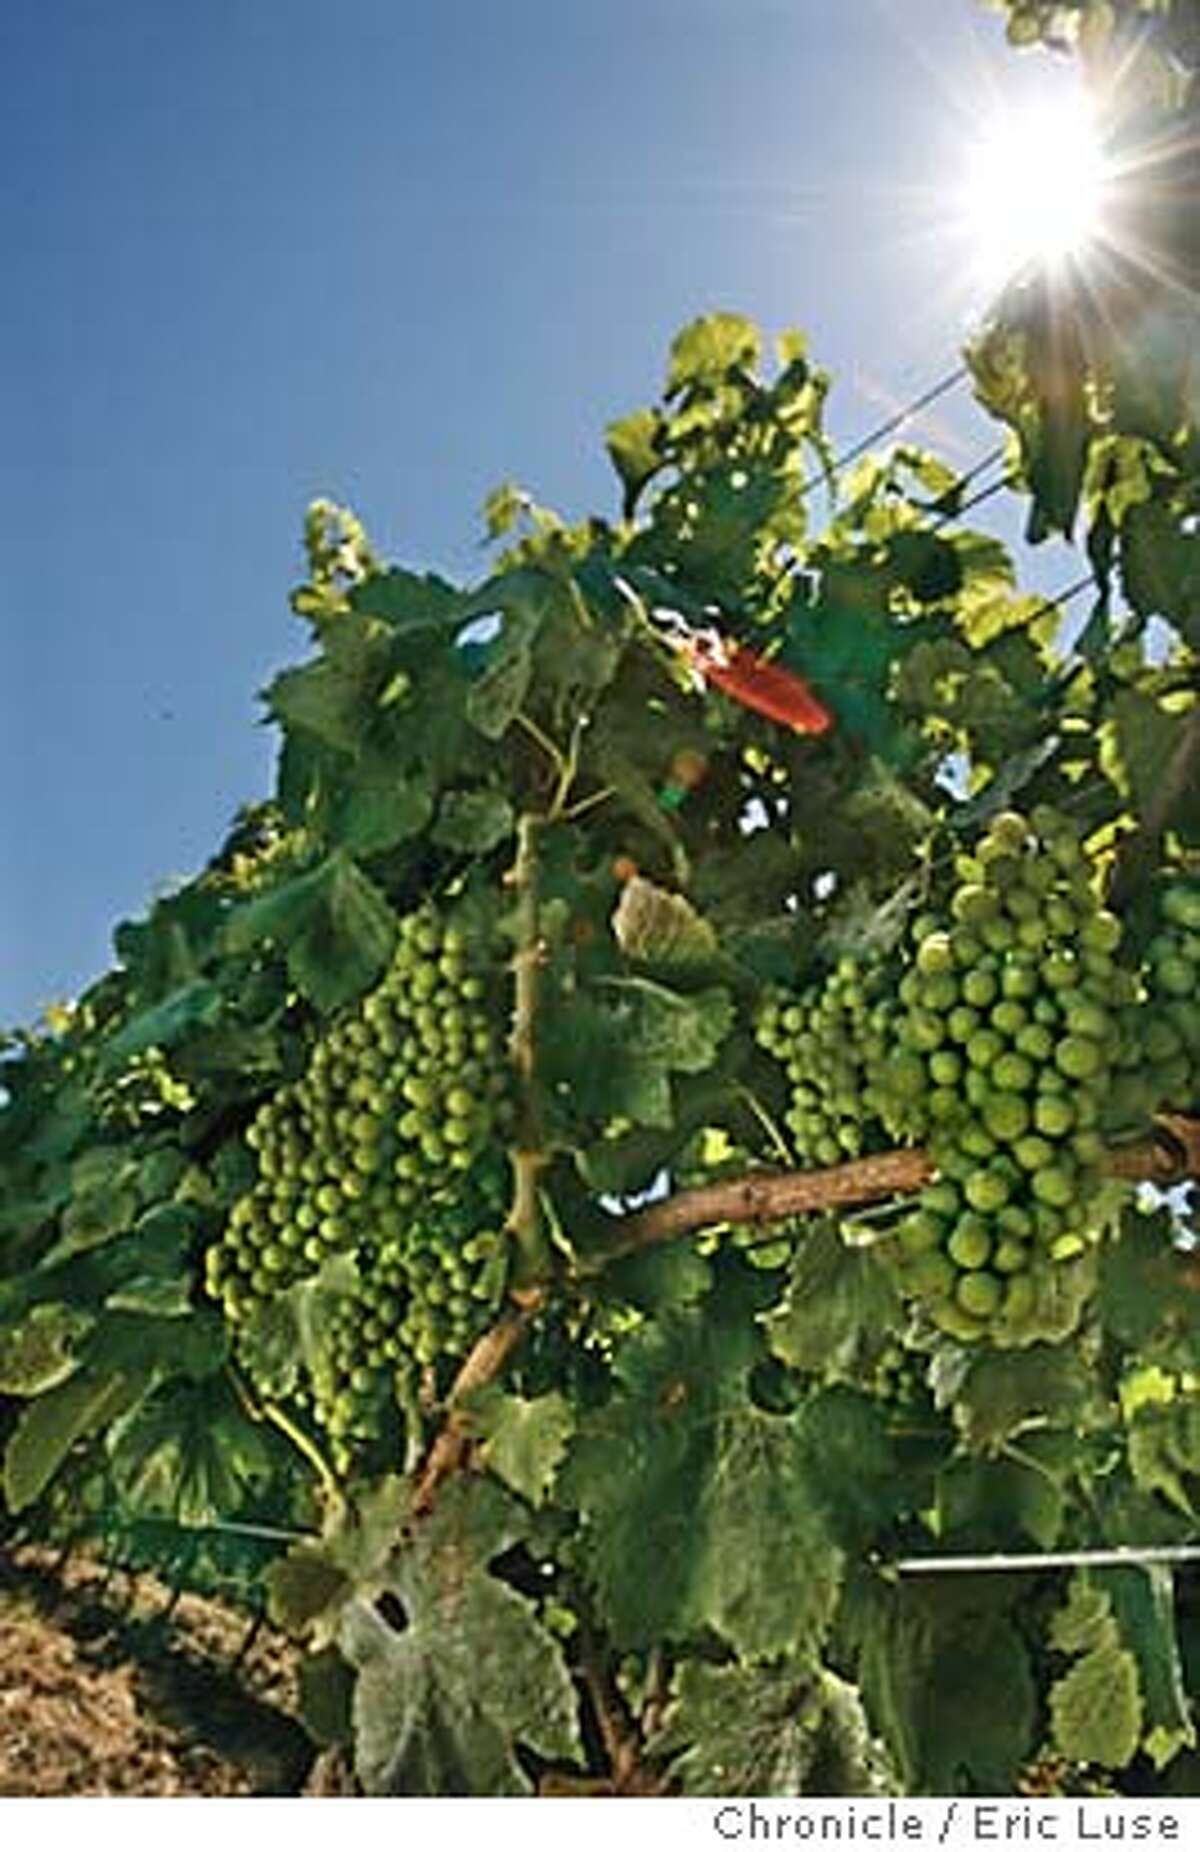 globalwarming030_el.jpg Chardonnay Vineyard showing grape clusters in their early development at Roche Vineyard in Sonoma County. Global warming and it's effect on vineyard's. Photographed in Sonoma Eric Luse/The Chronicle names (cq) from source